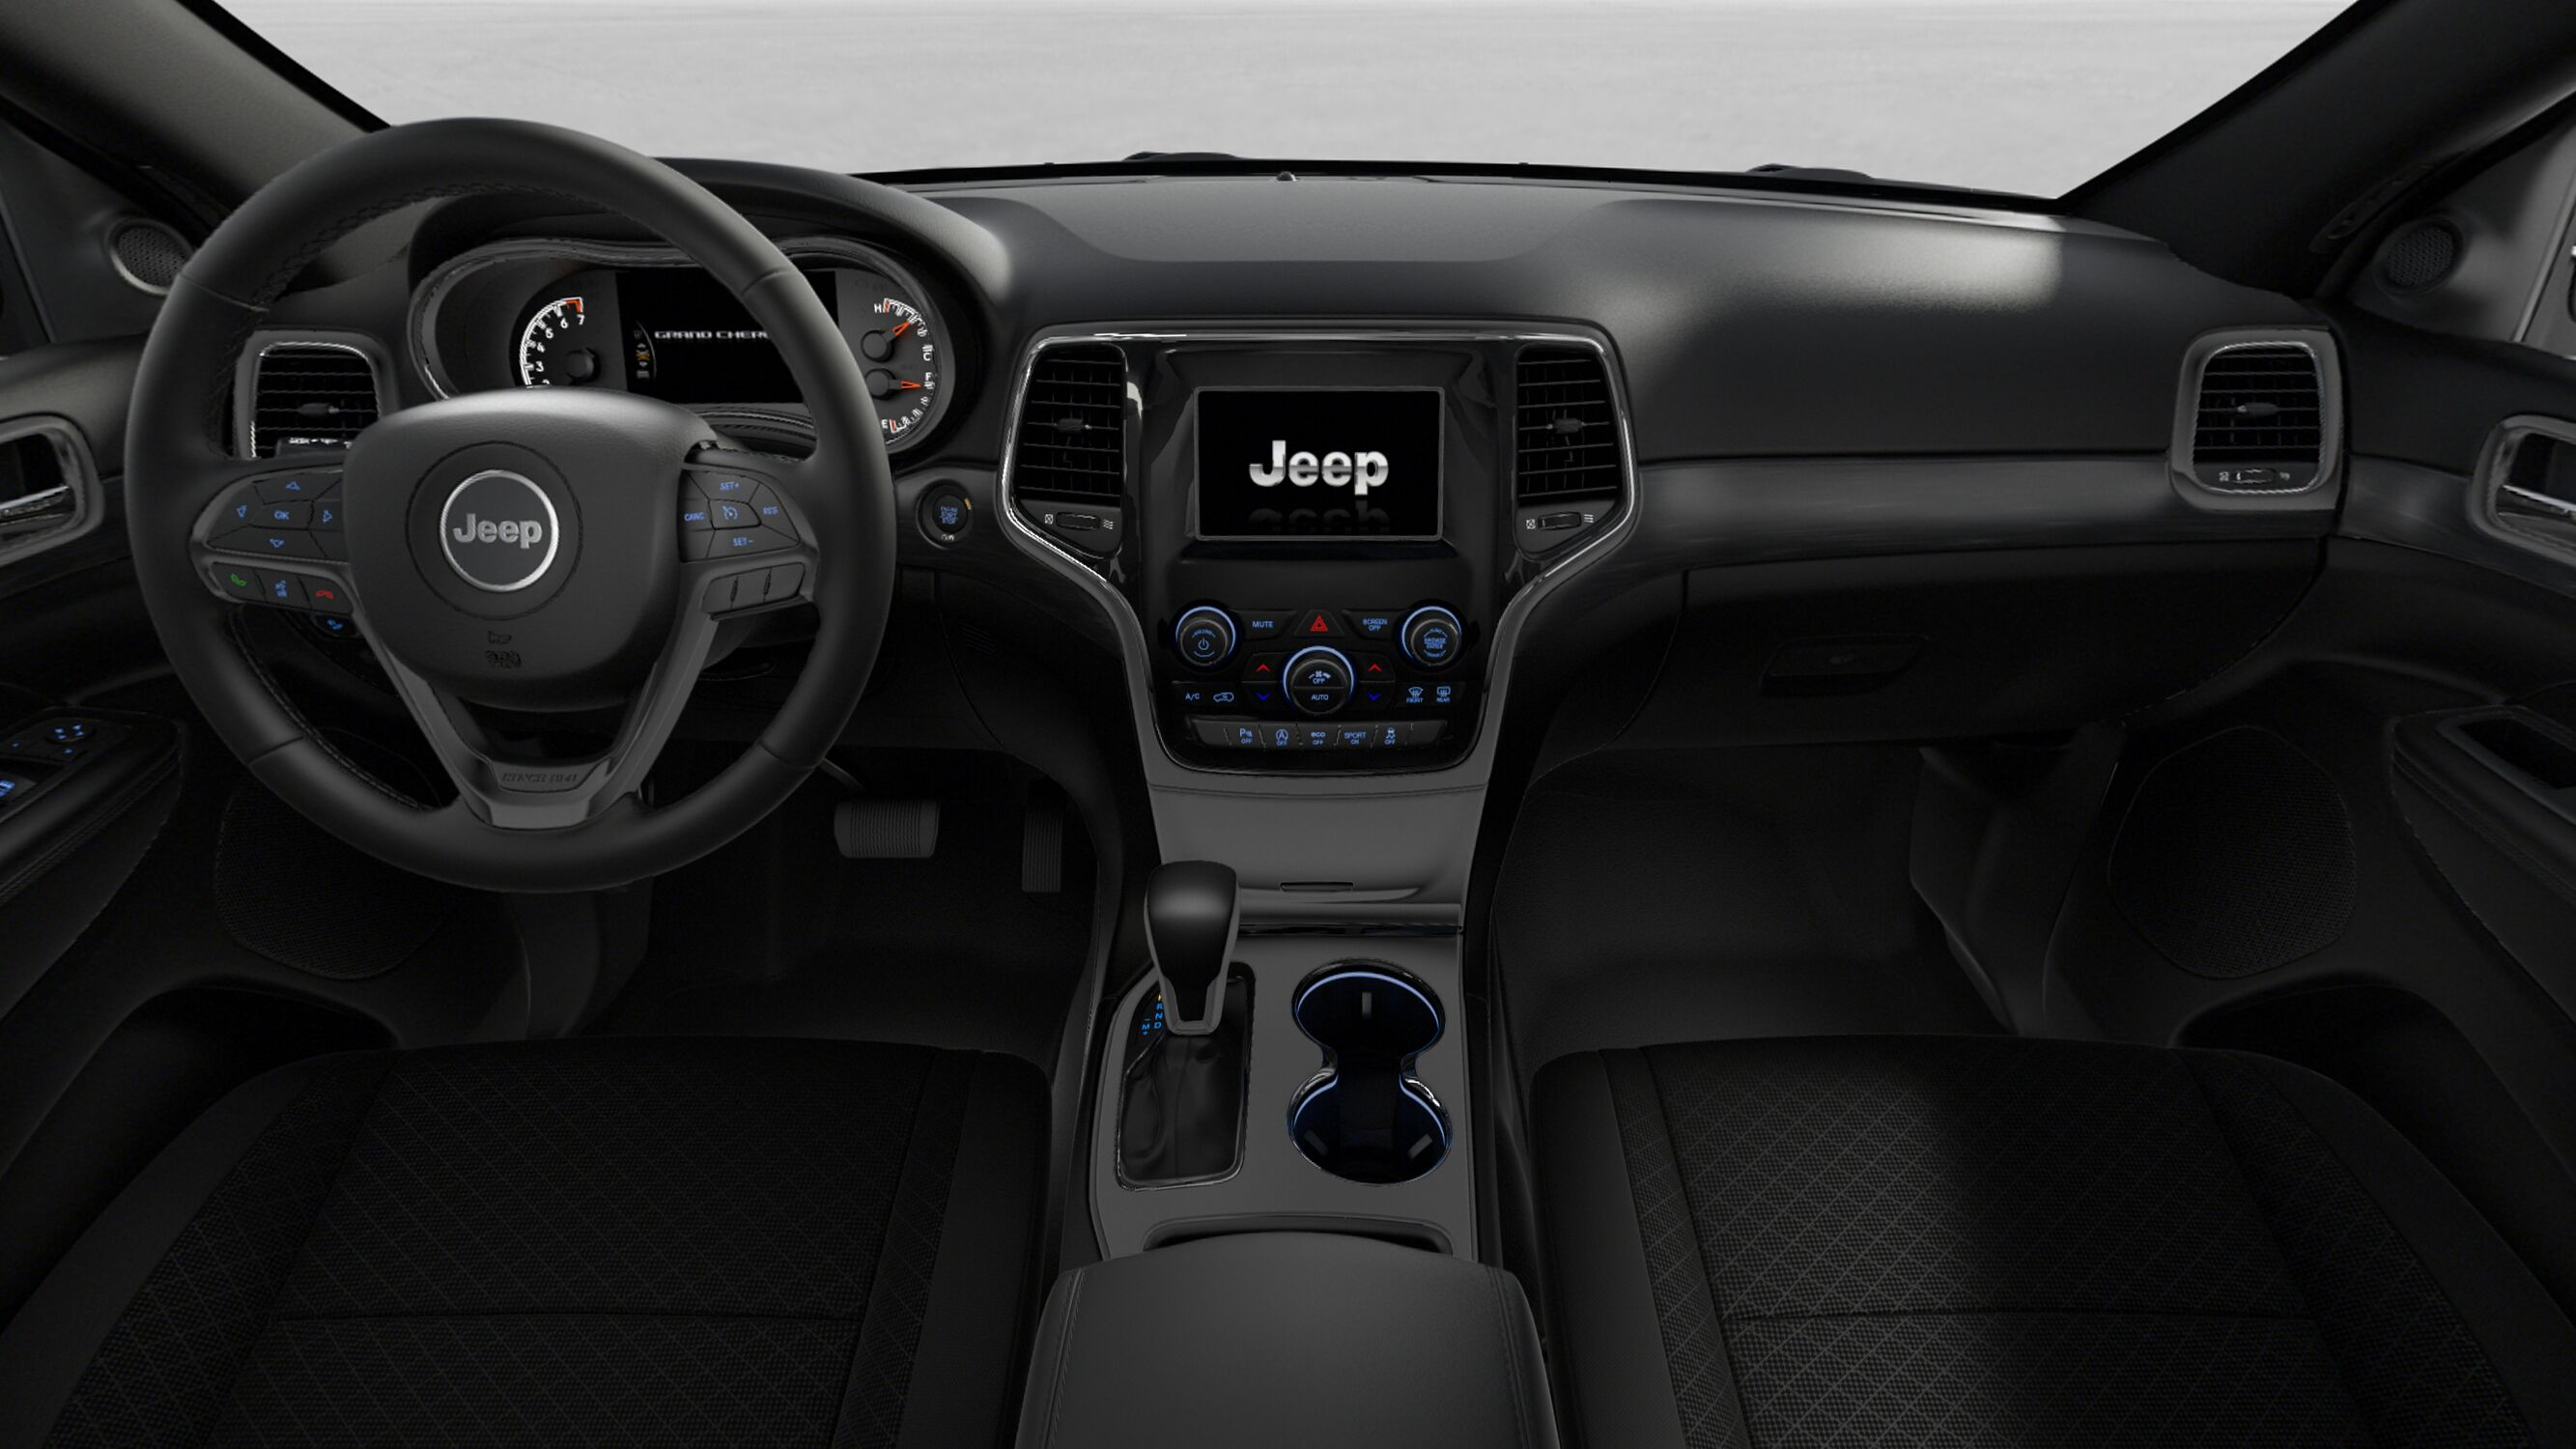 2019 Jeep Grand Cherokee Laredo Front Interior Dashboard